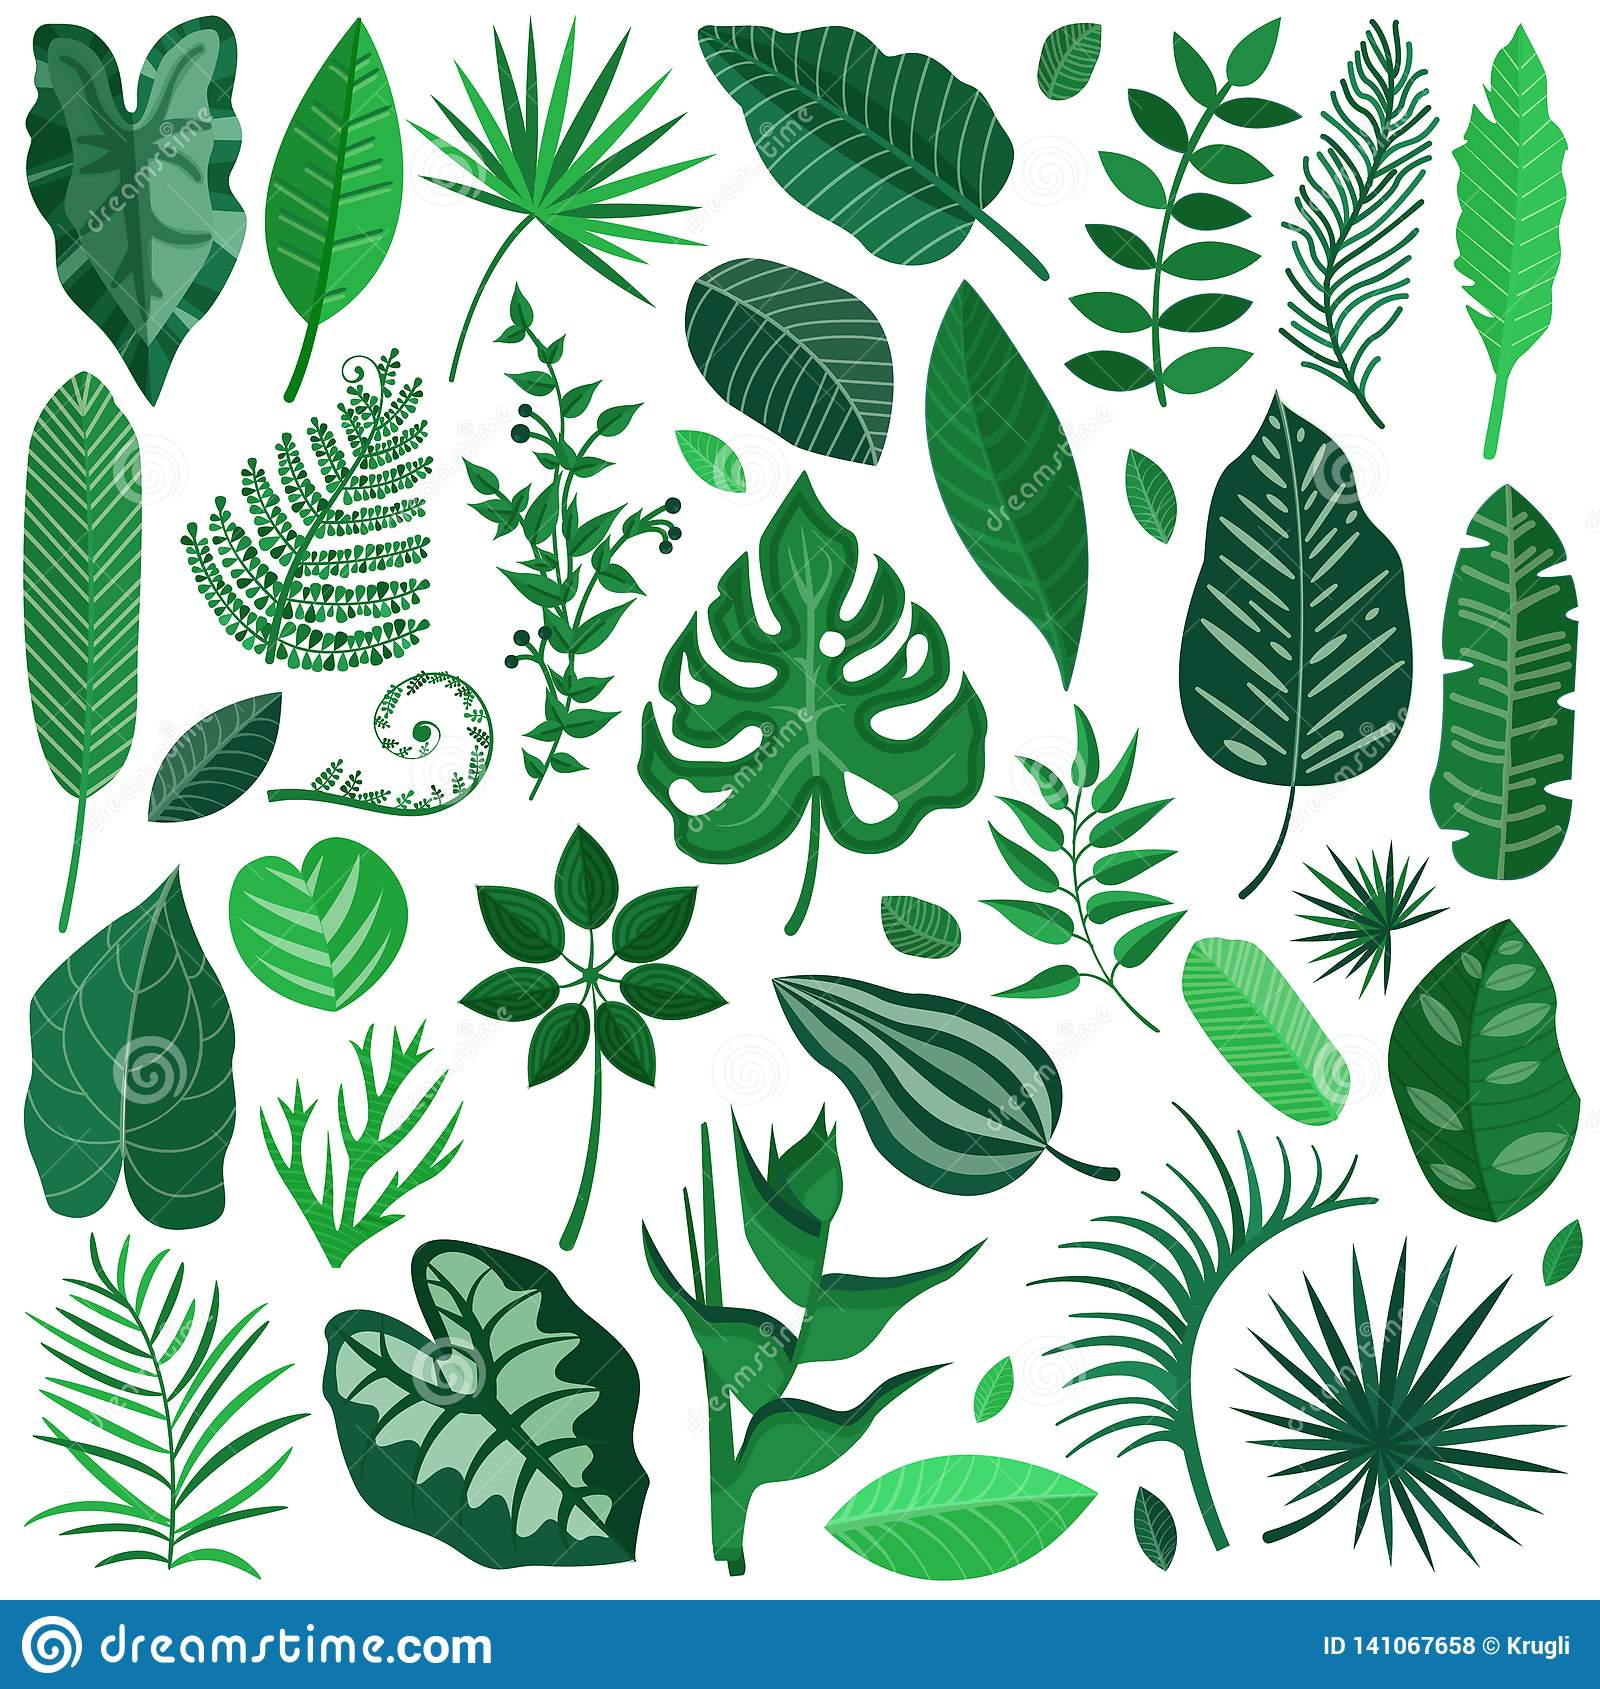 Rainforest Tropical Leaves Collection Stock Vector Illustration Of Floral Branch 141067658 About 2% of these are wallpapers/wall coating. https www dreamstime com rainforest tropical leaves collection green palm tree branches banana leaf exotic cartoon style botanical set image141067658